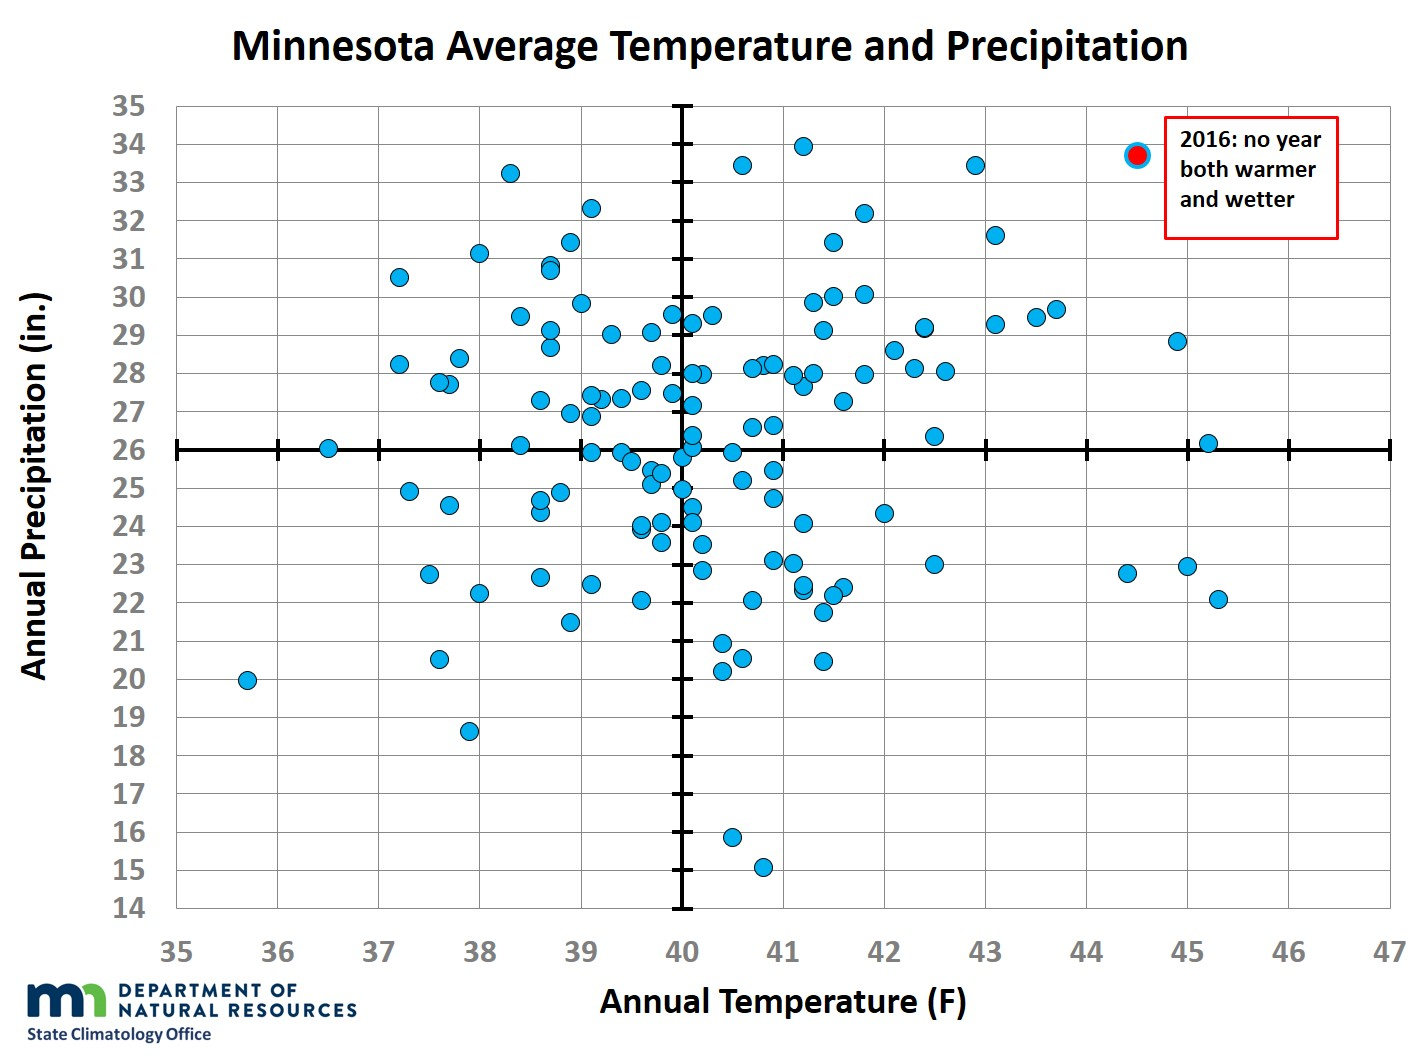 Chart showing statewide annual average temperature plotted against annual total precipitation, with 2016 standing out as both very warm and very wet.